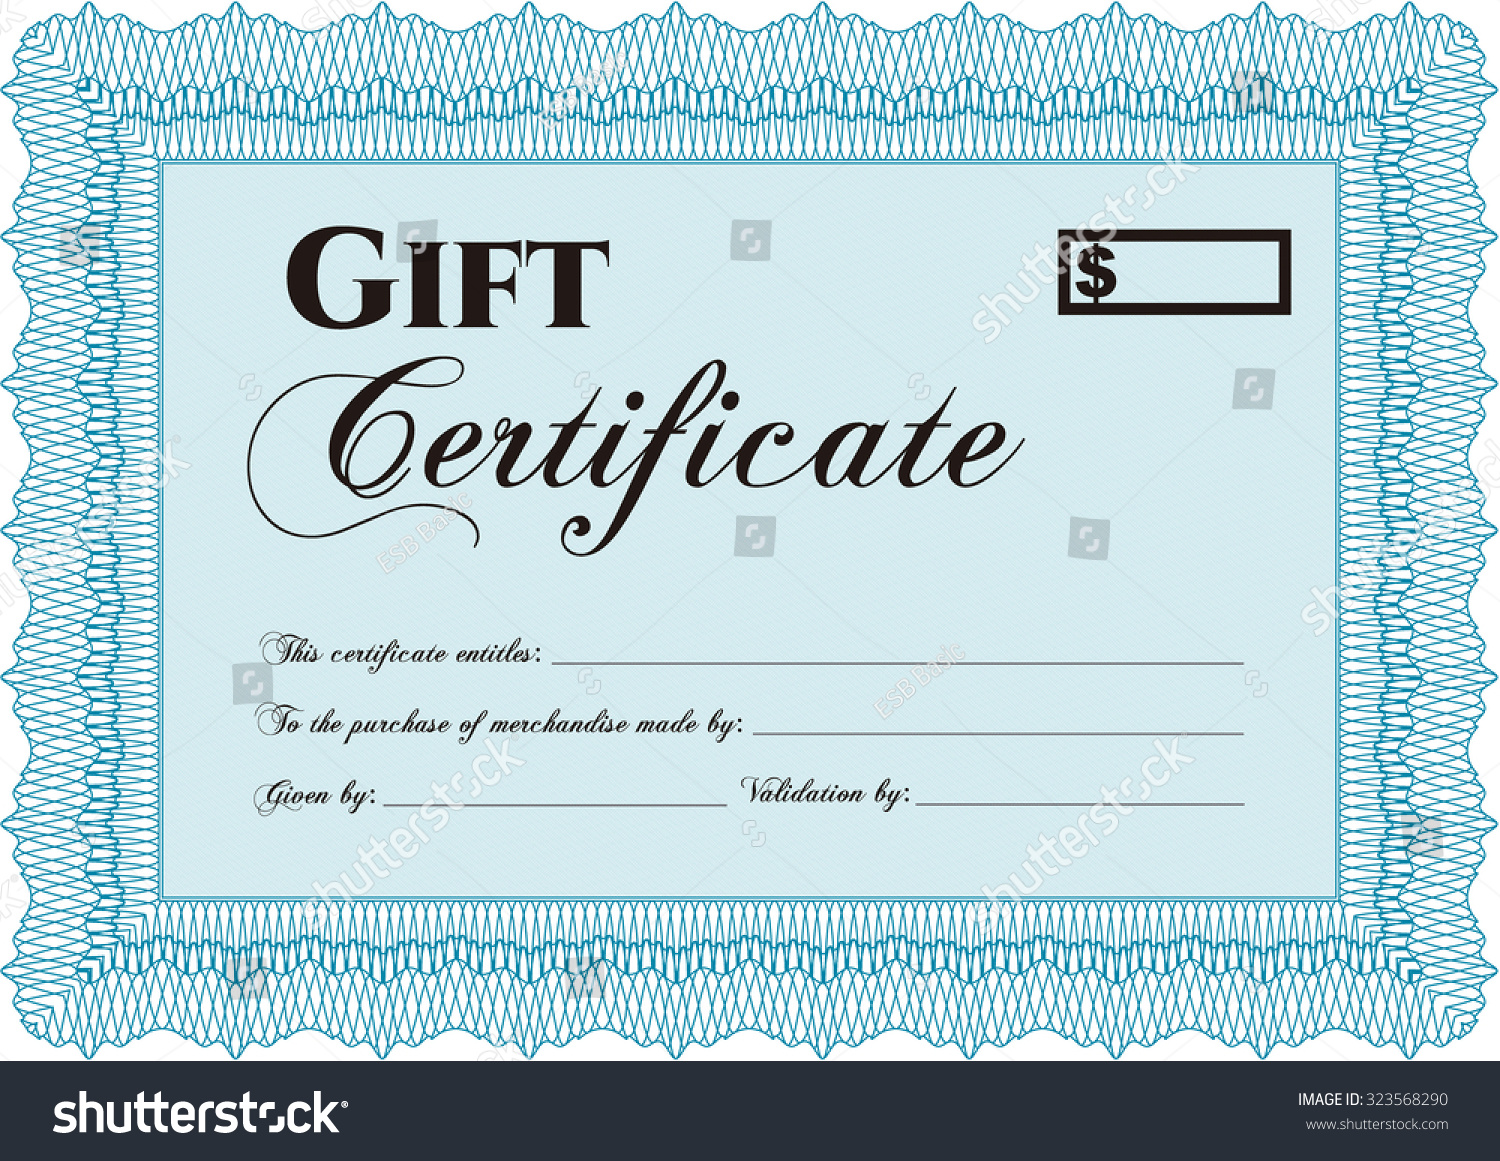 Gift certificate template water treatment in africa diagram 2002 formal gift certificate template excellent design stock vector stock vector formal gift certificate template excellent design xflitez Gallery